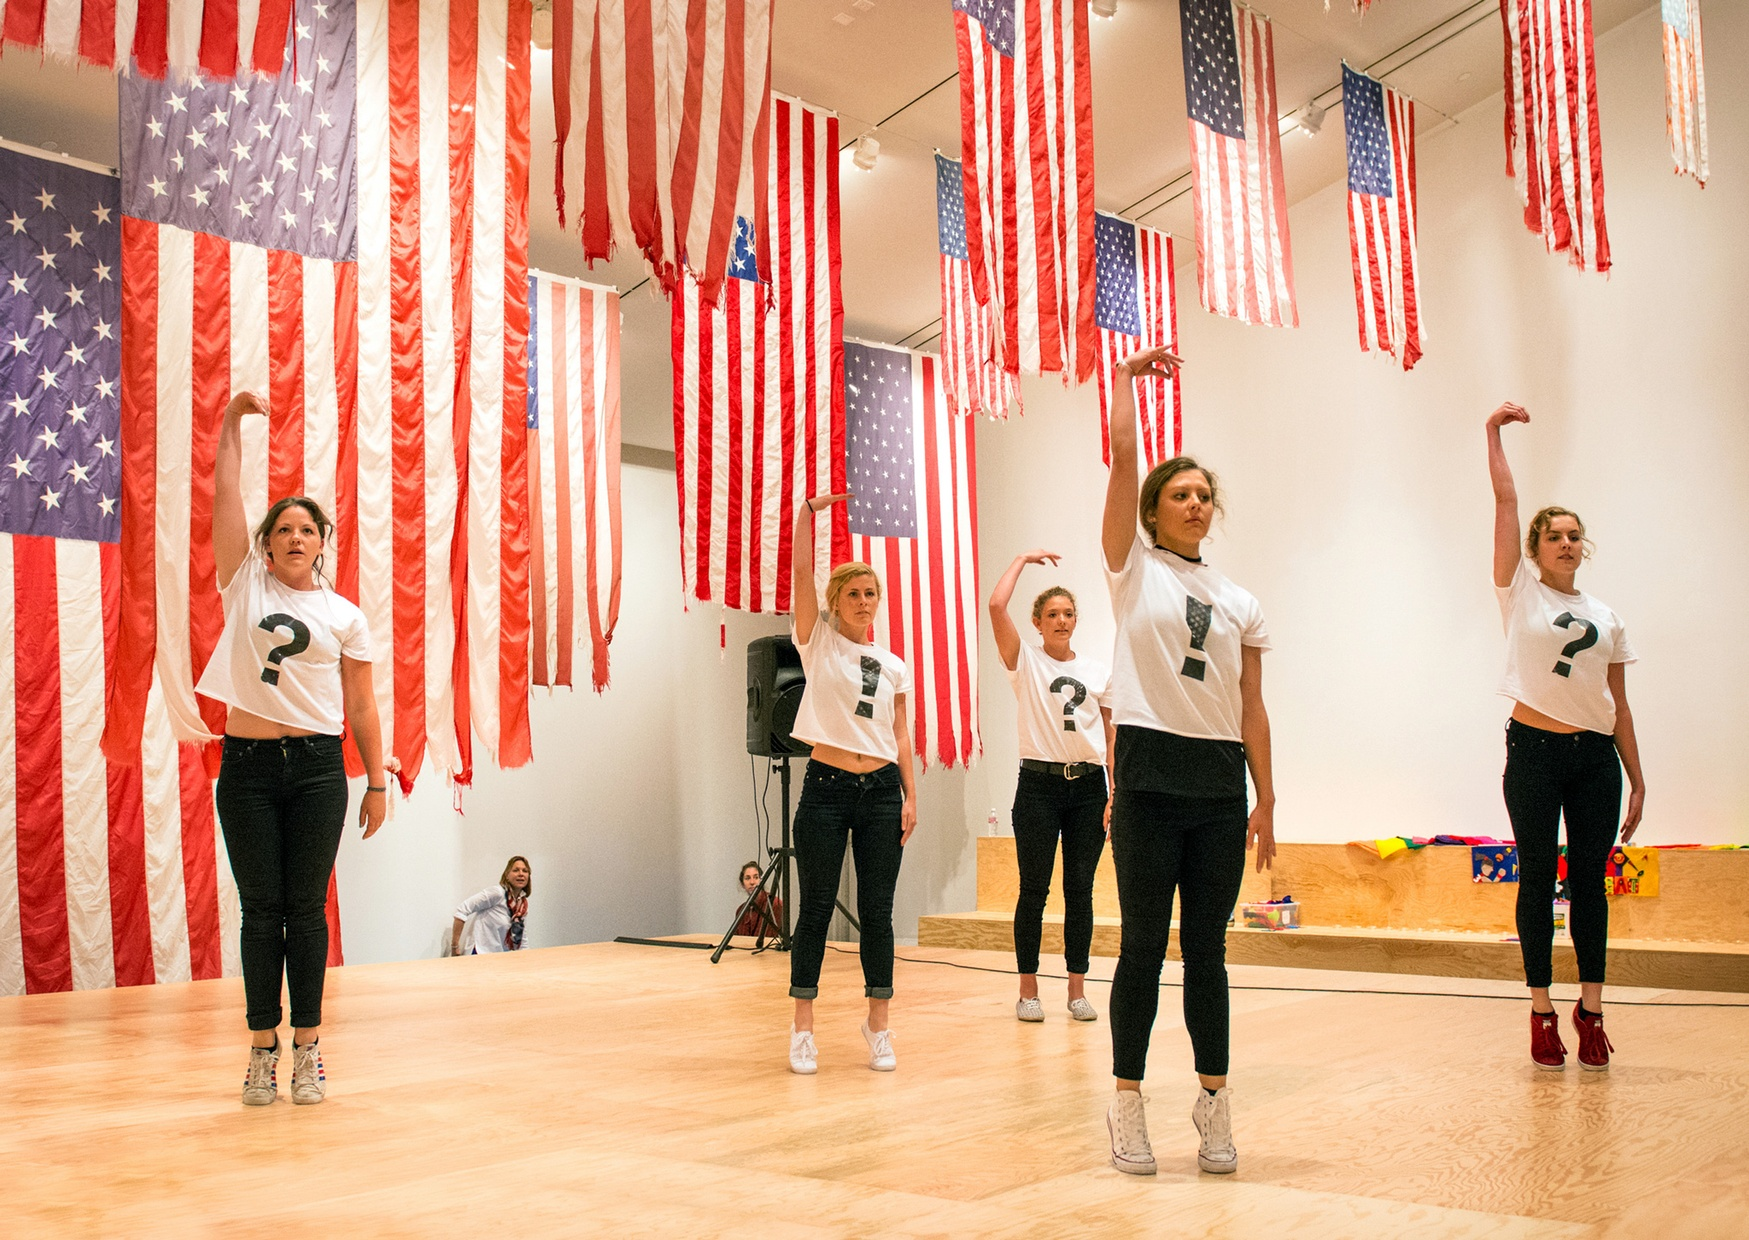 Five light-skinned females pose with one arm raised on a wooden stage surrounded by American flags hung from the ceiling.